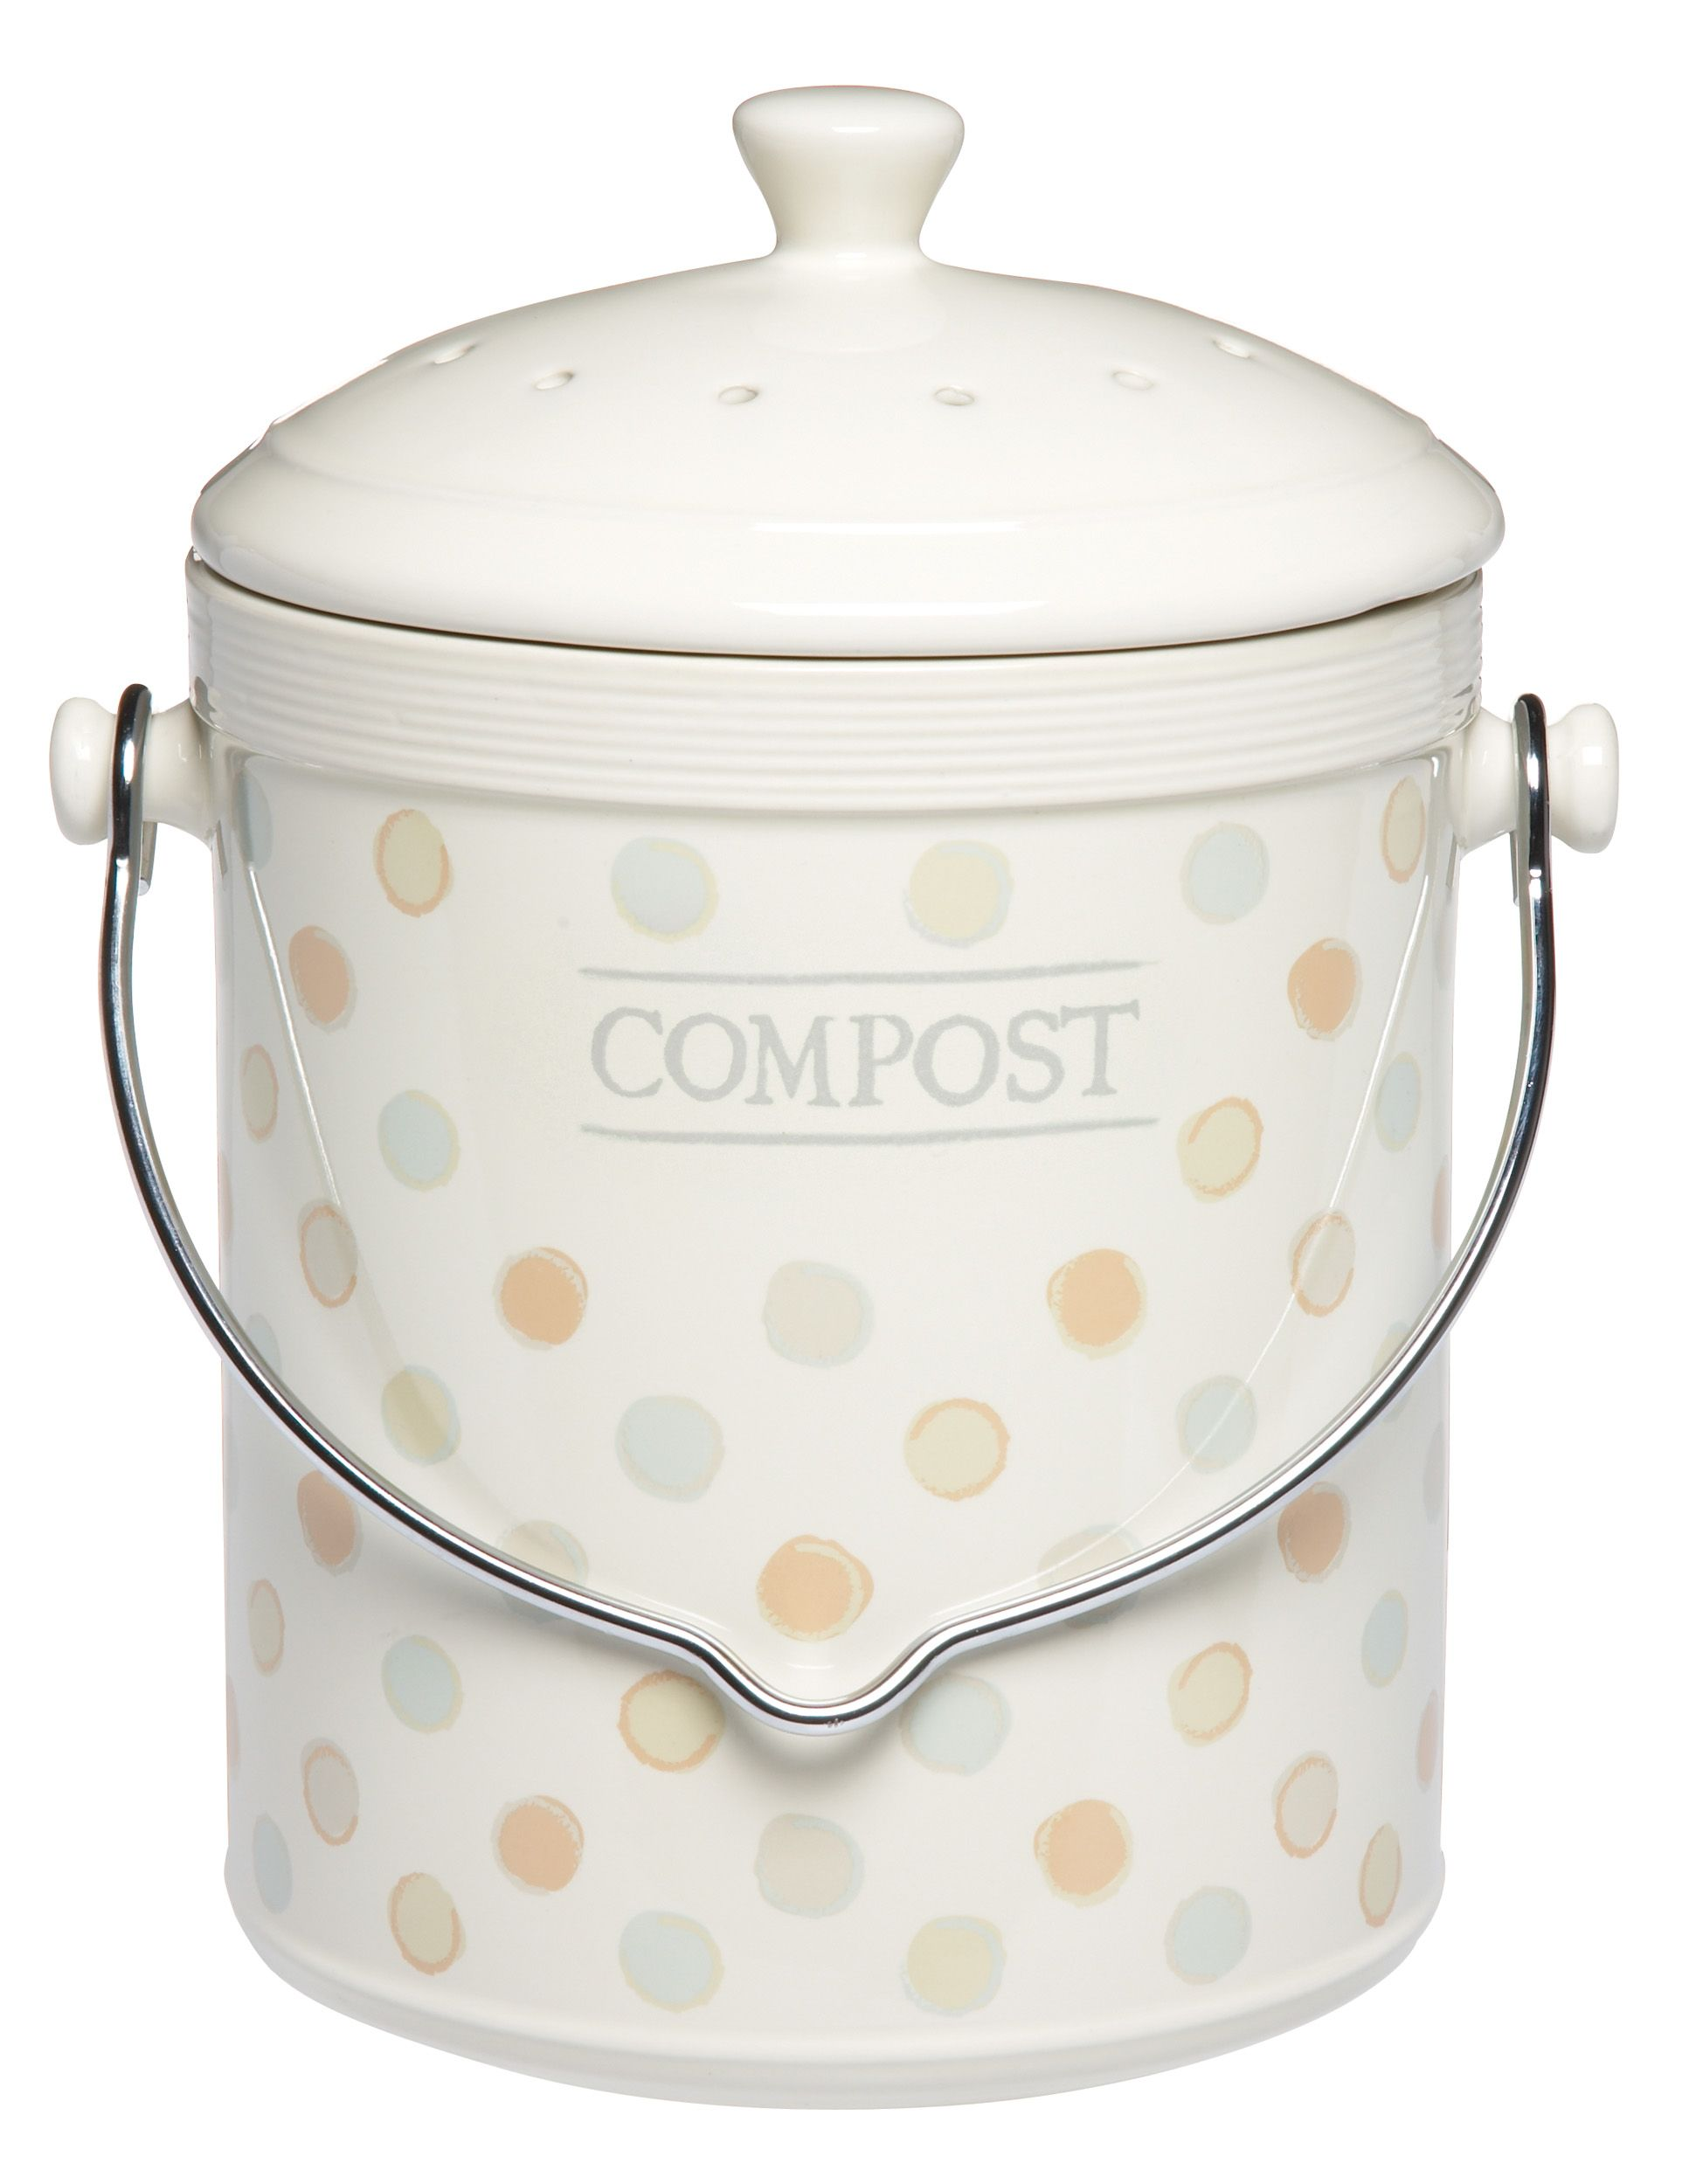 kitchen craft classic collection ceramic compost bin the classic